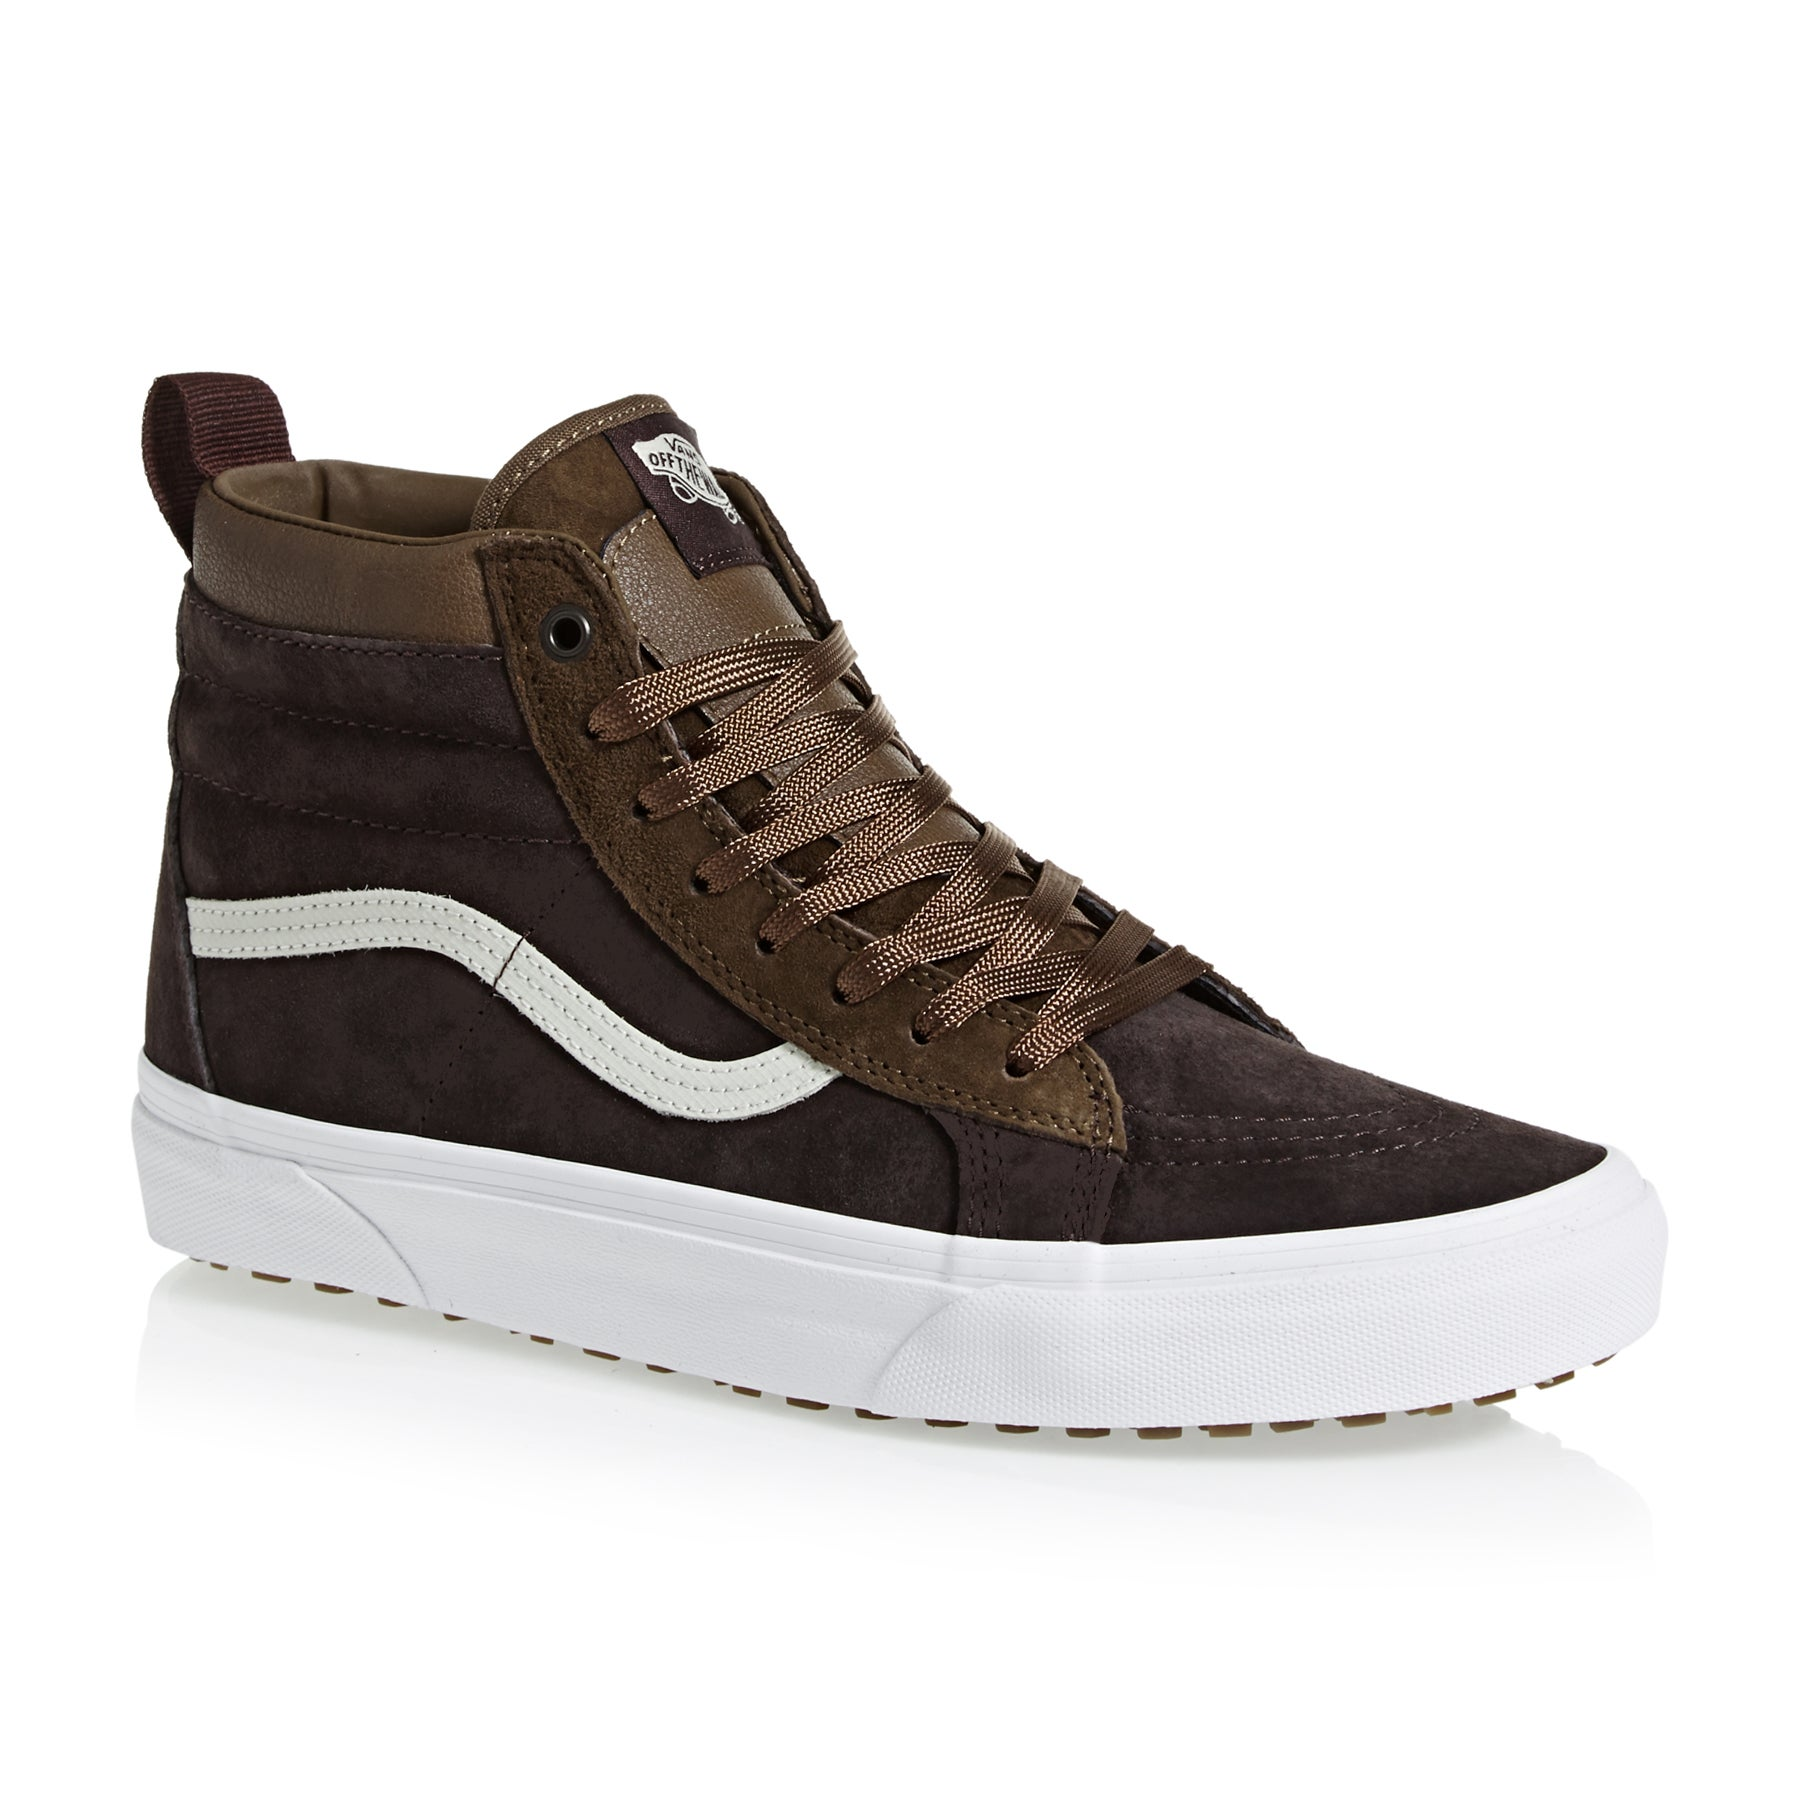 Vans Sk8 Hi MTE Shoes available from Surfdome